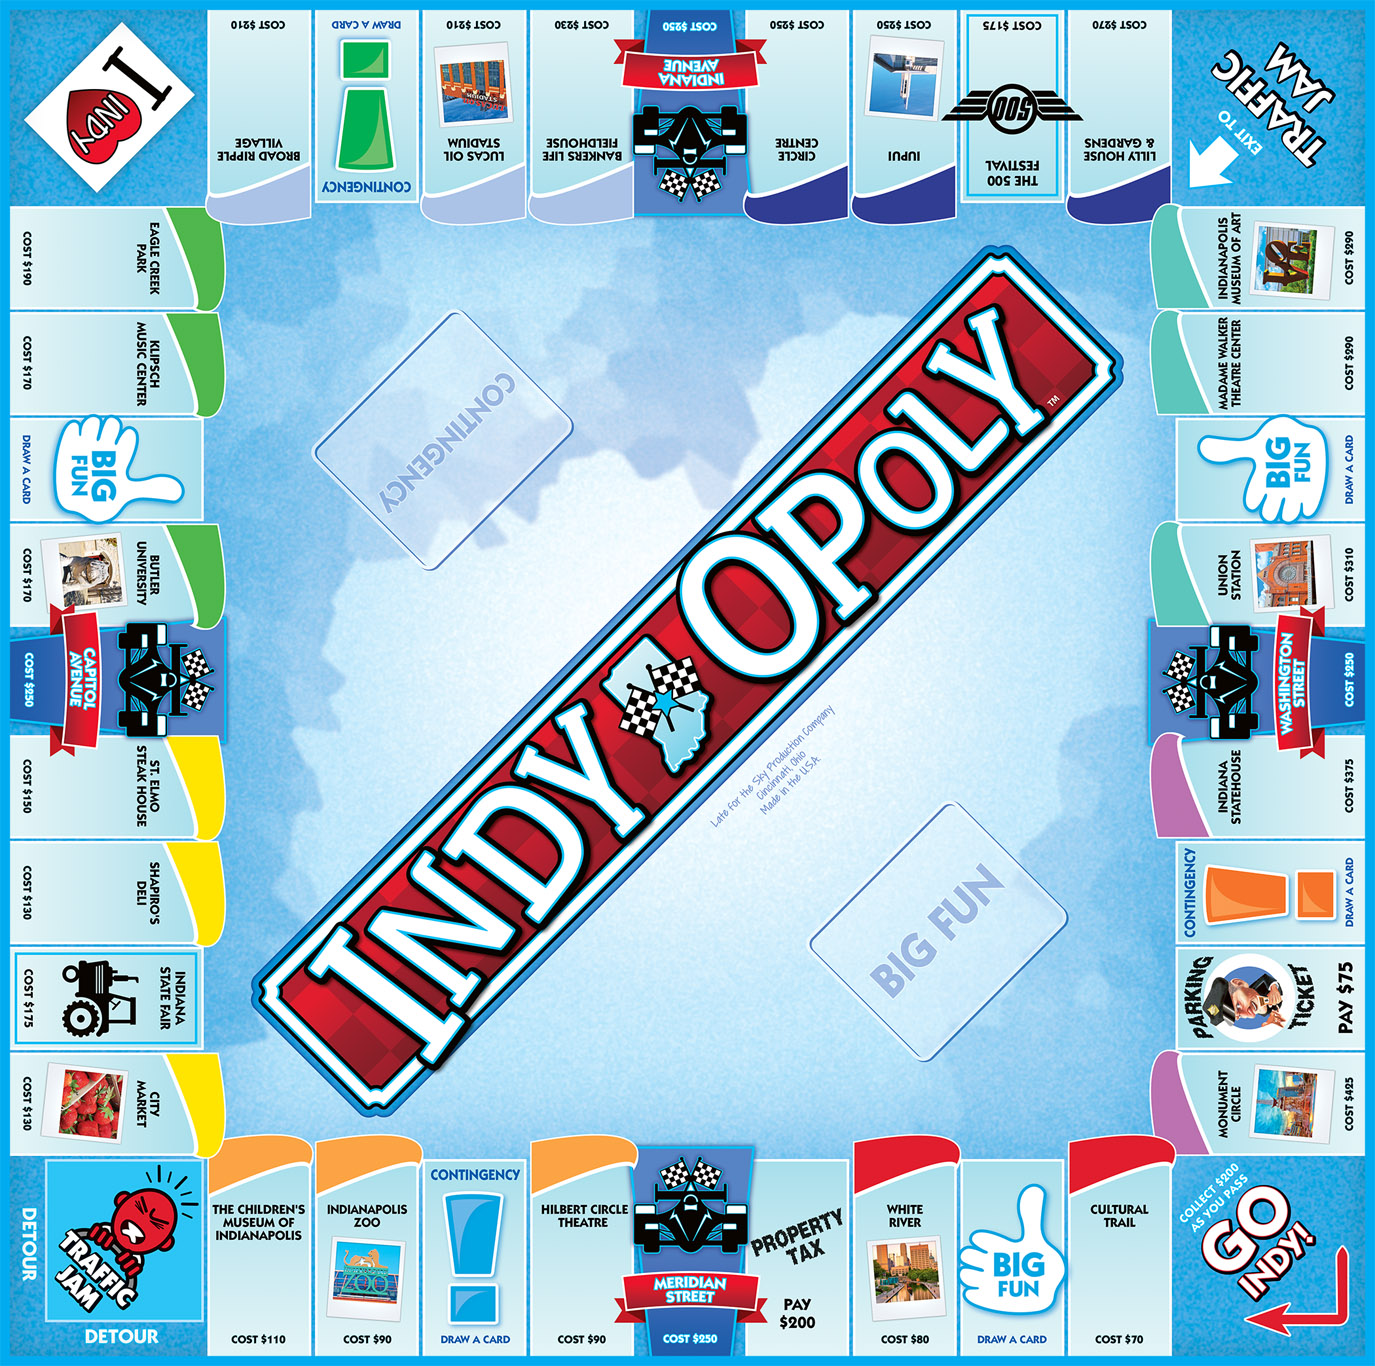 INDY-OPOLY Board Game